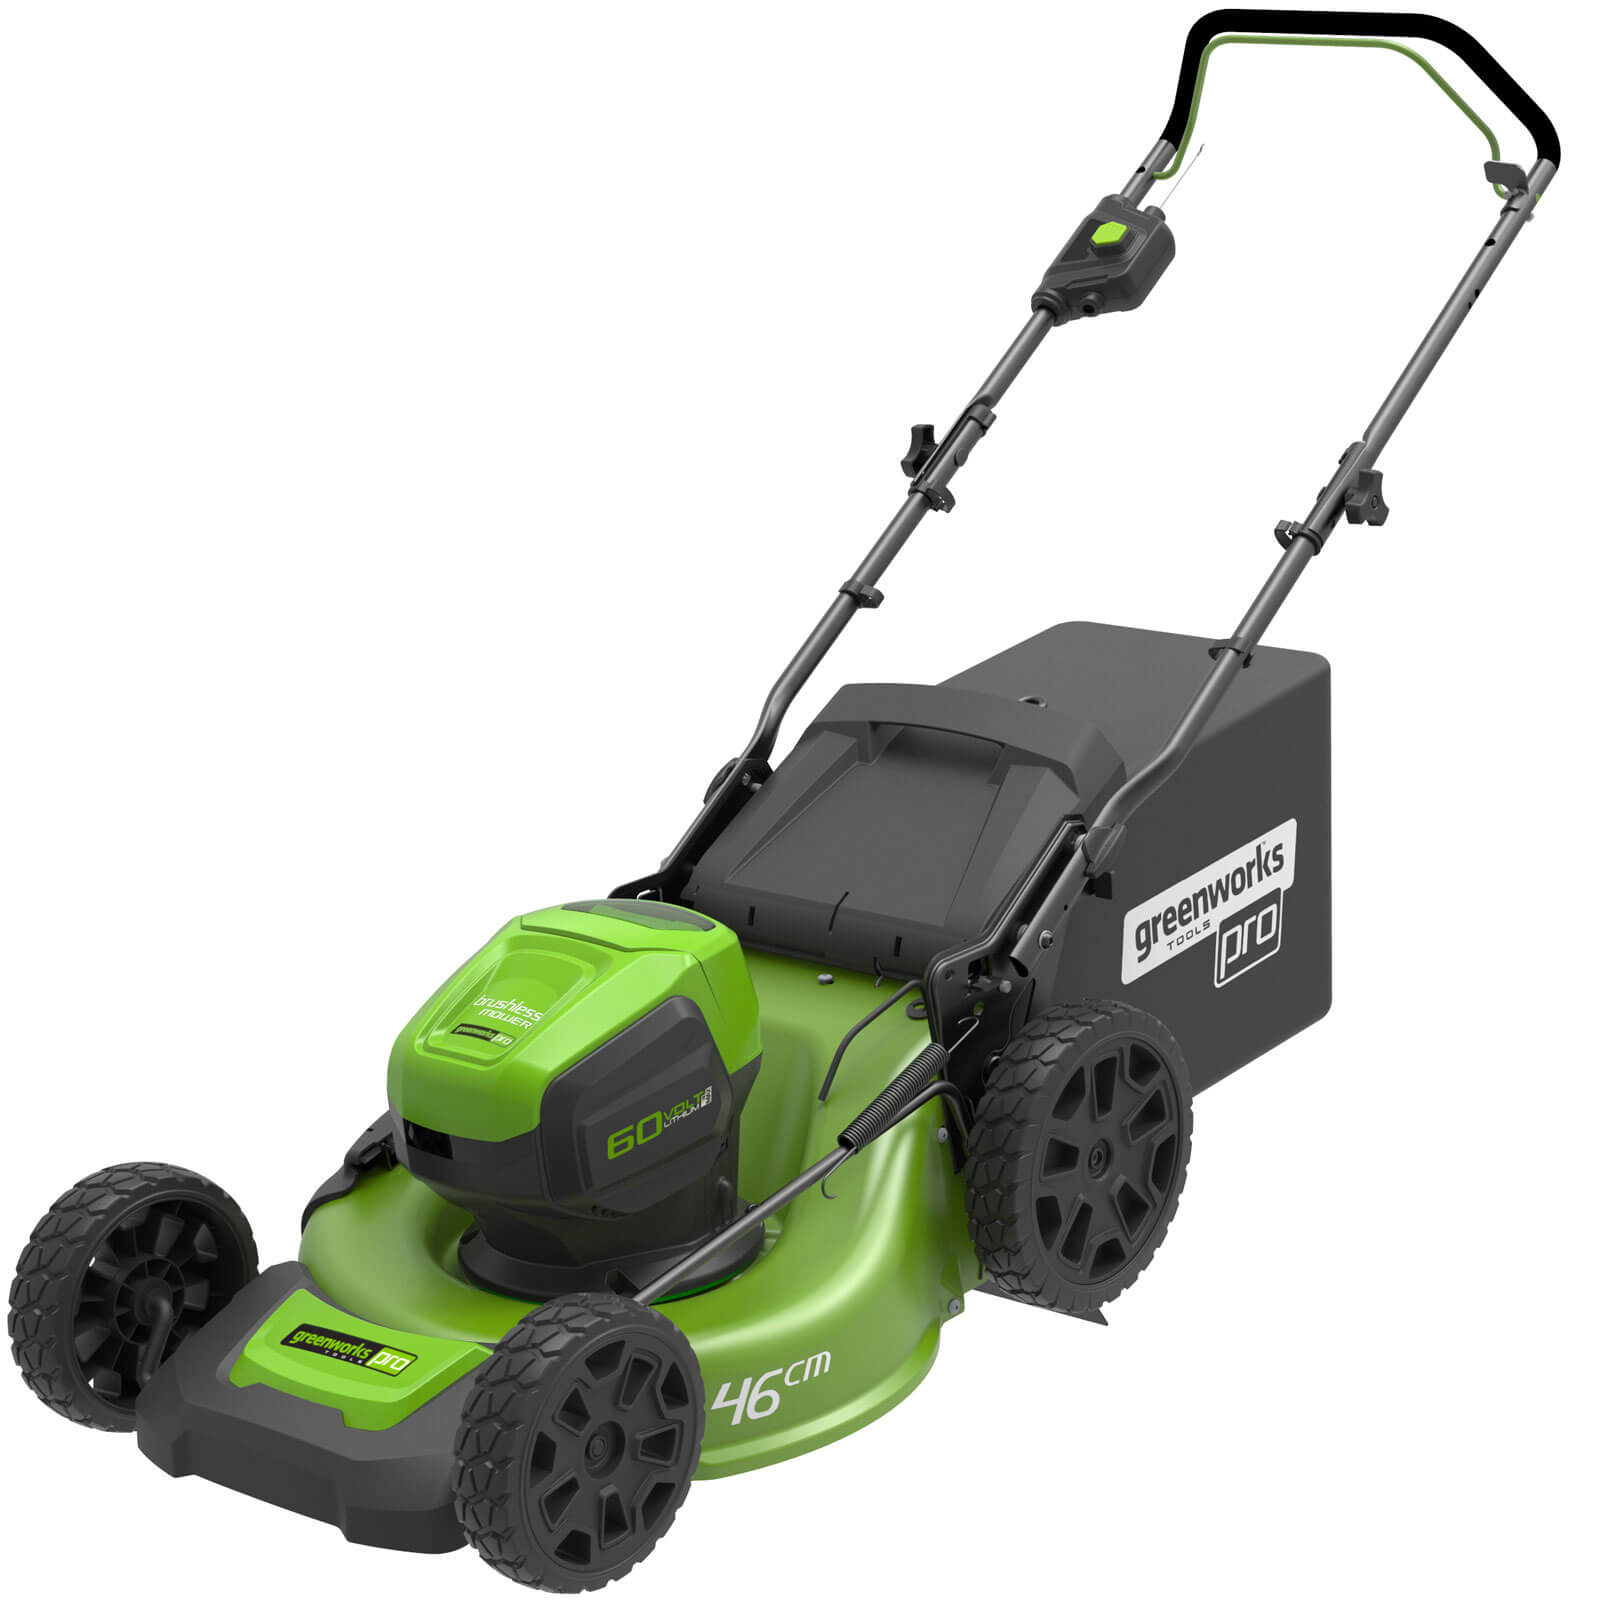 Image of Greenworks GD60LM46 60v Cordless Push Rotary Lawnmower 460mm No Batteries No Charger